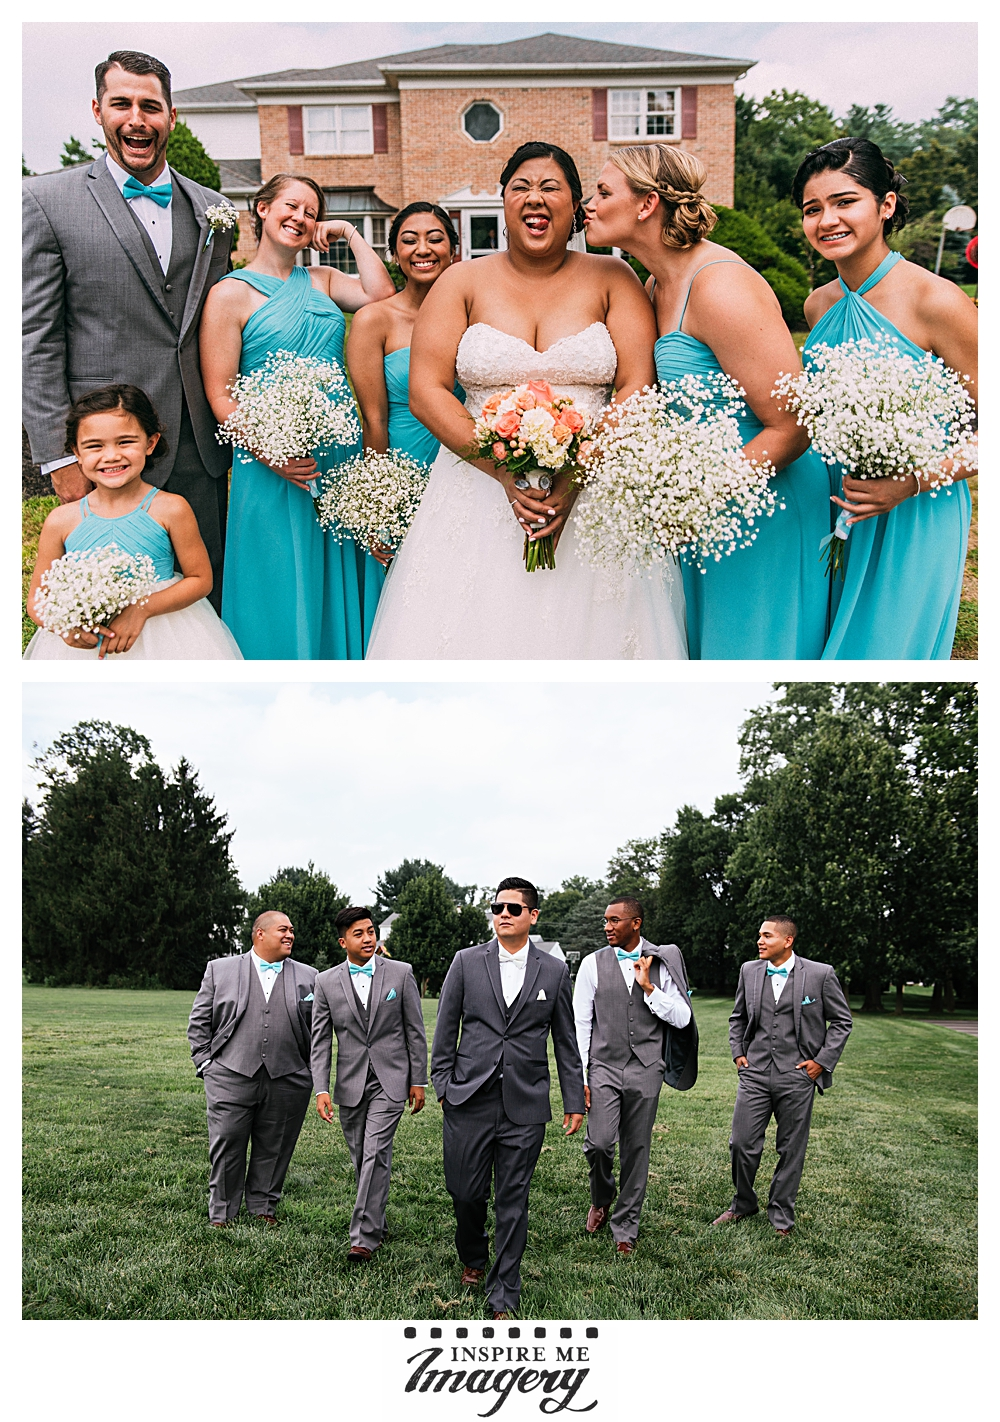 This was a seriously fun group to work with during the wedding party portraits.